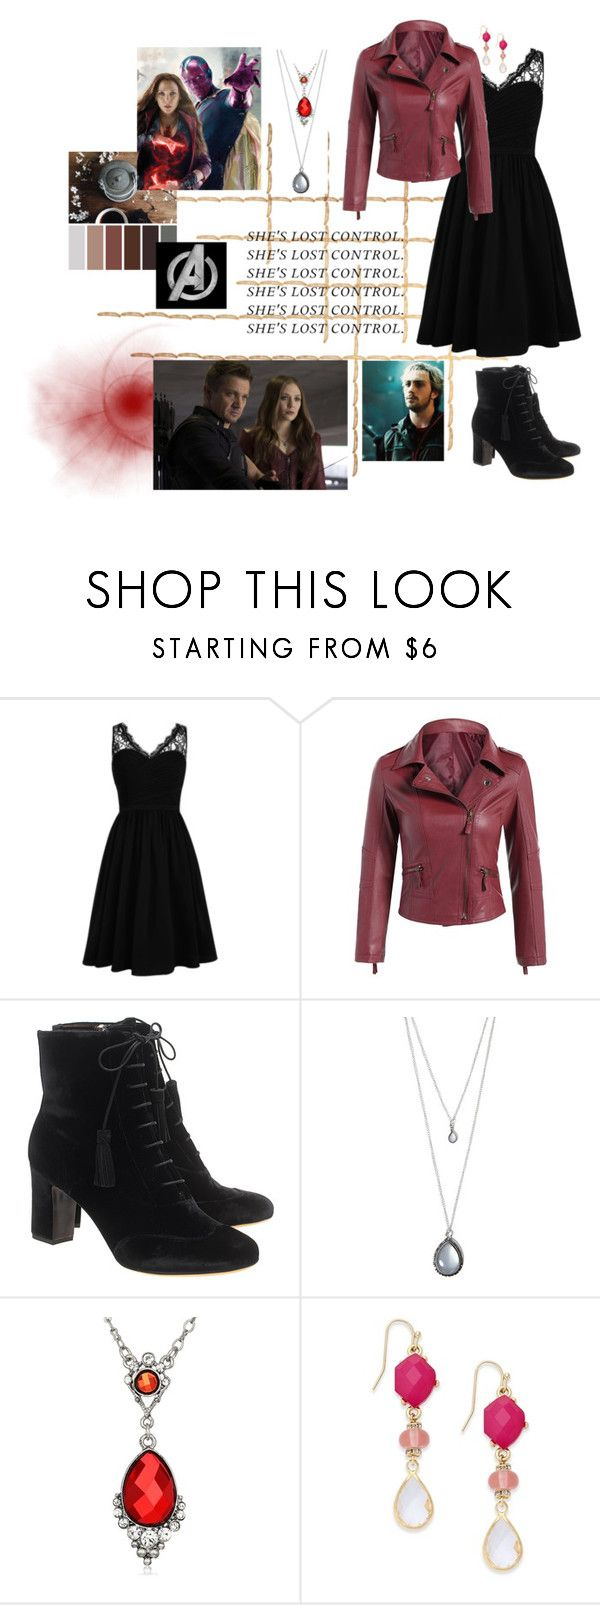 """Hello, my name is Wanda Maximoff"" by scorpion-sama ❤ liked on Polyvore featuring ...Lost, Quiksilver, Tabitha Simmons, Forever 21, 1928 and INC International Concepts"